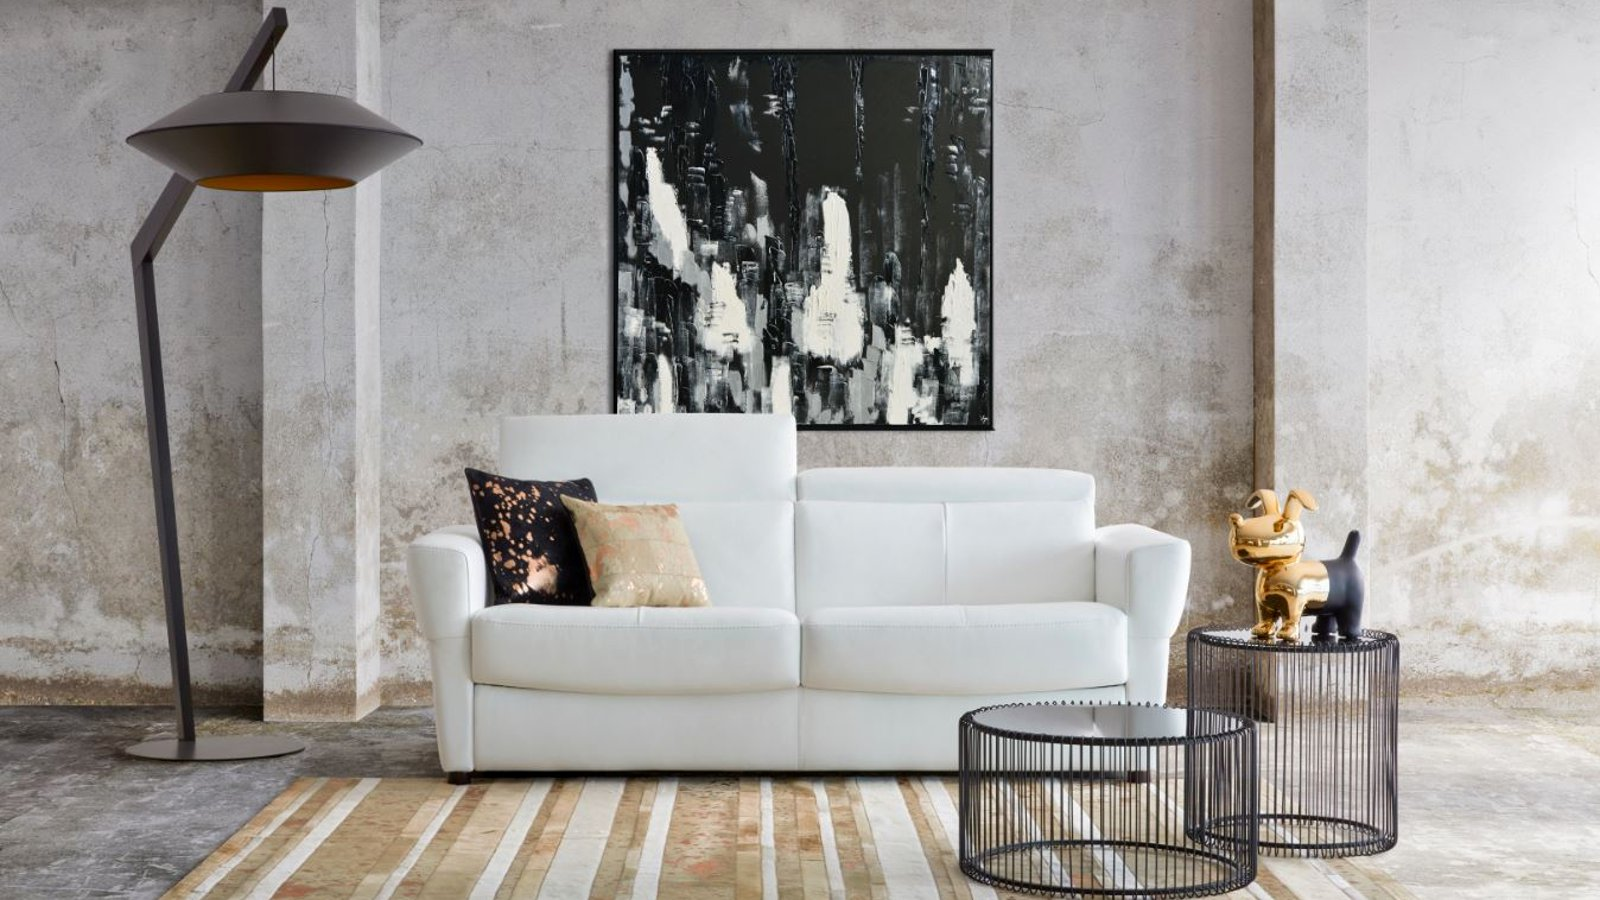 {{ produ\ 																									  ct.product_name }}